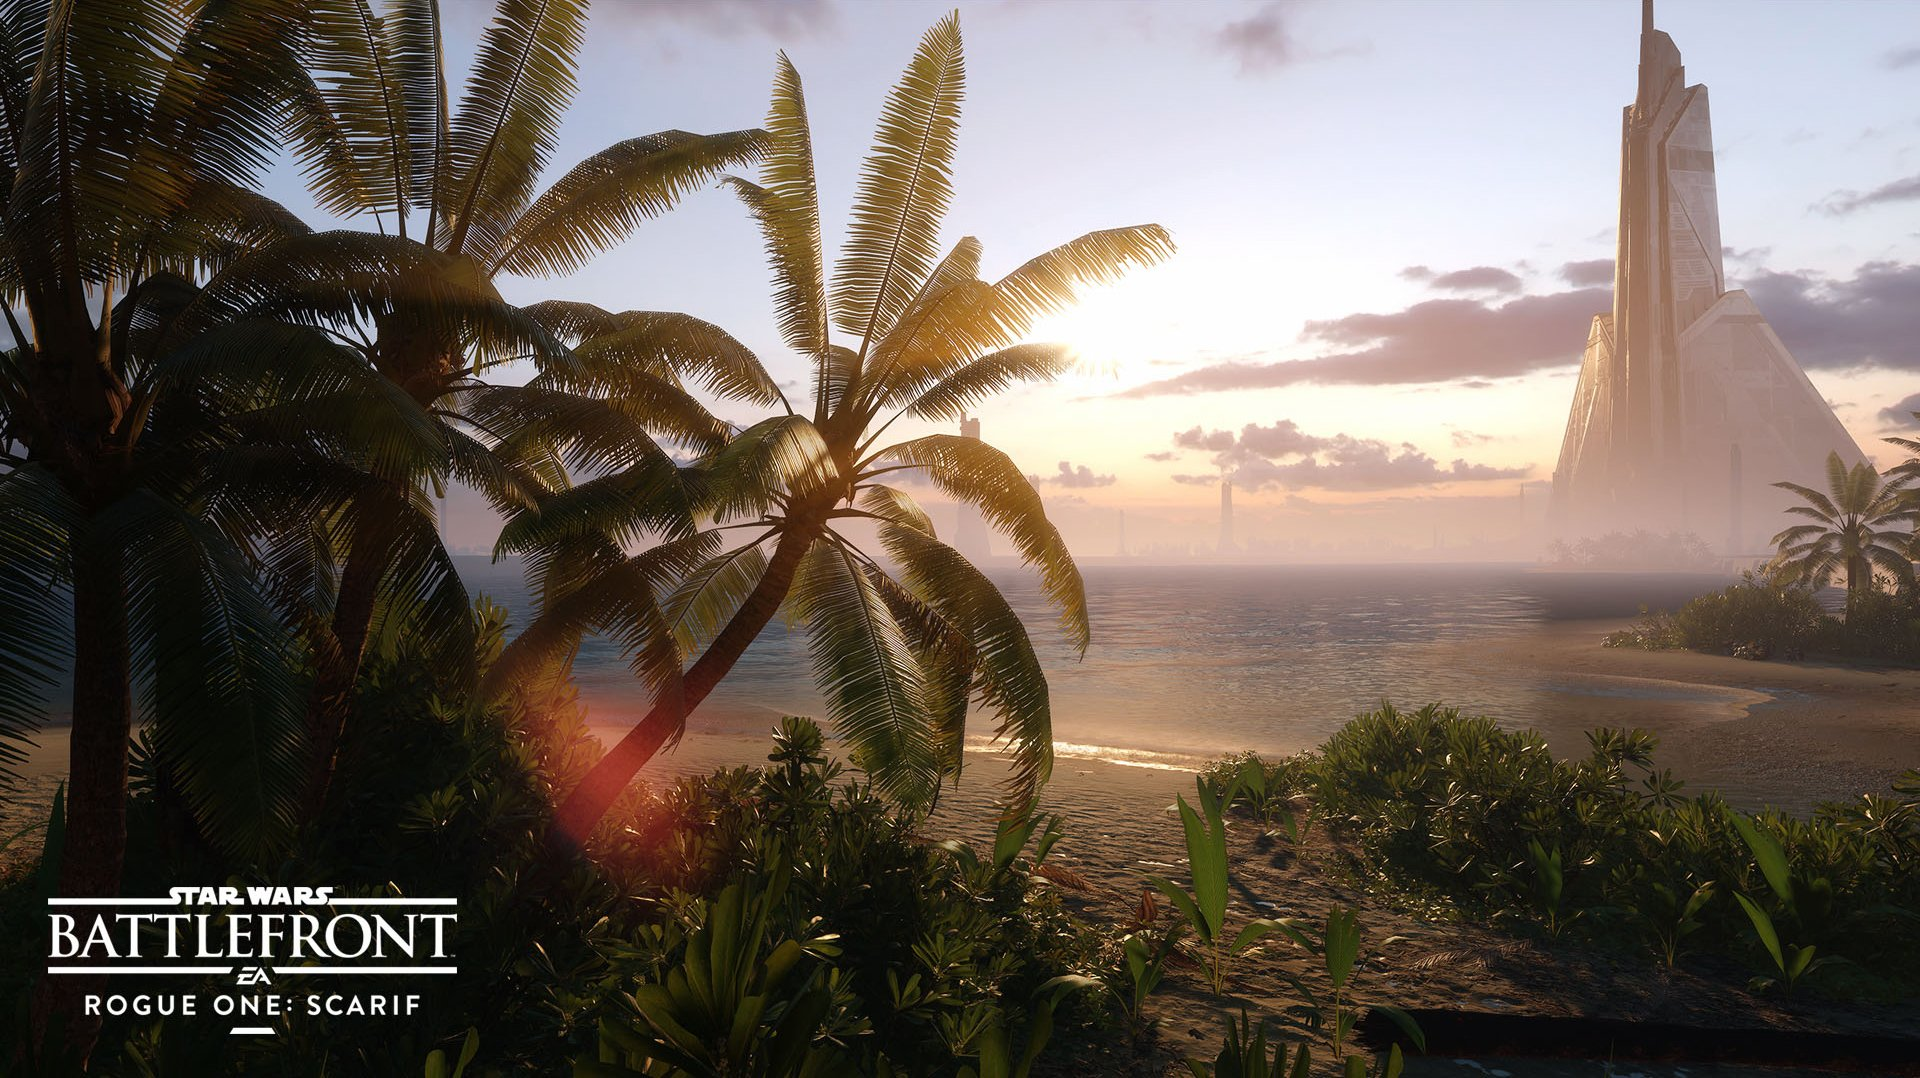 Star Wars Battlefront: Rogue One: Scarif review